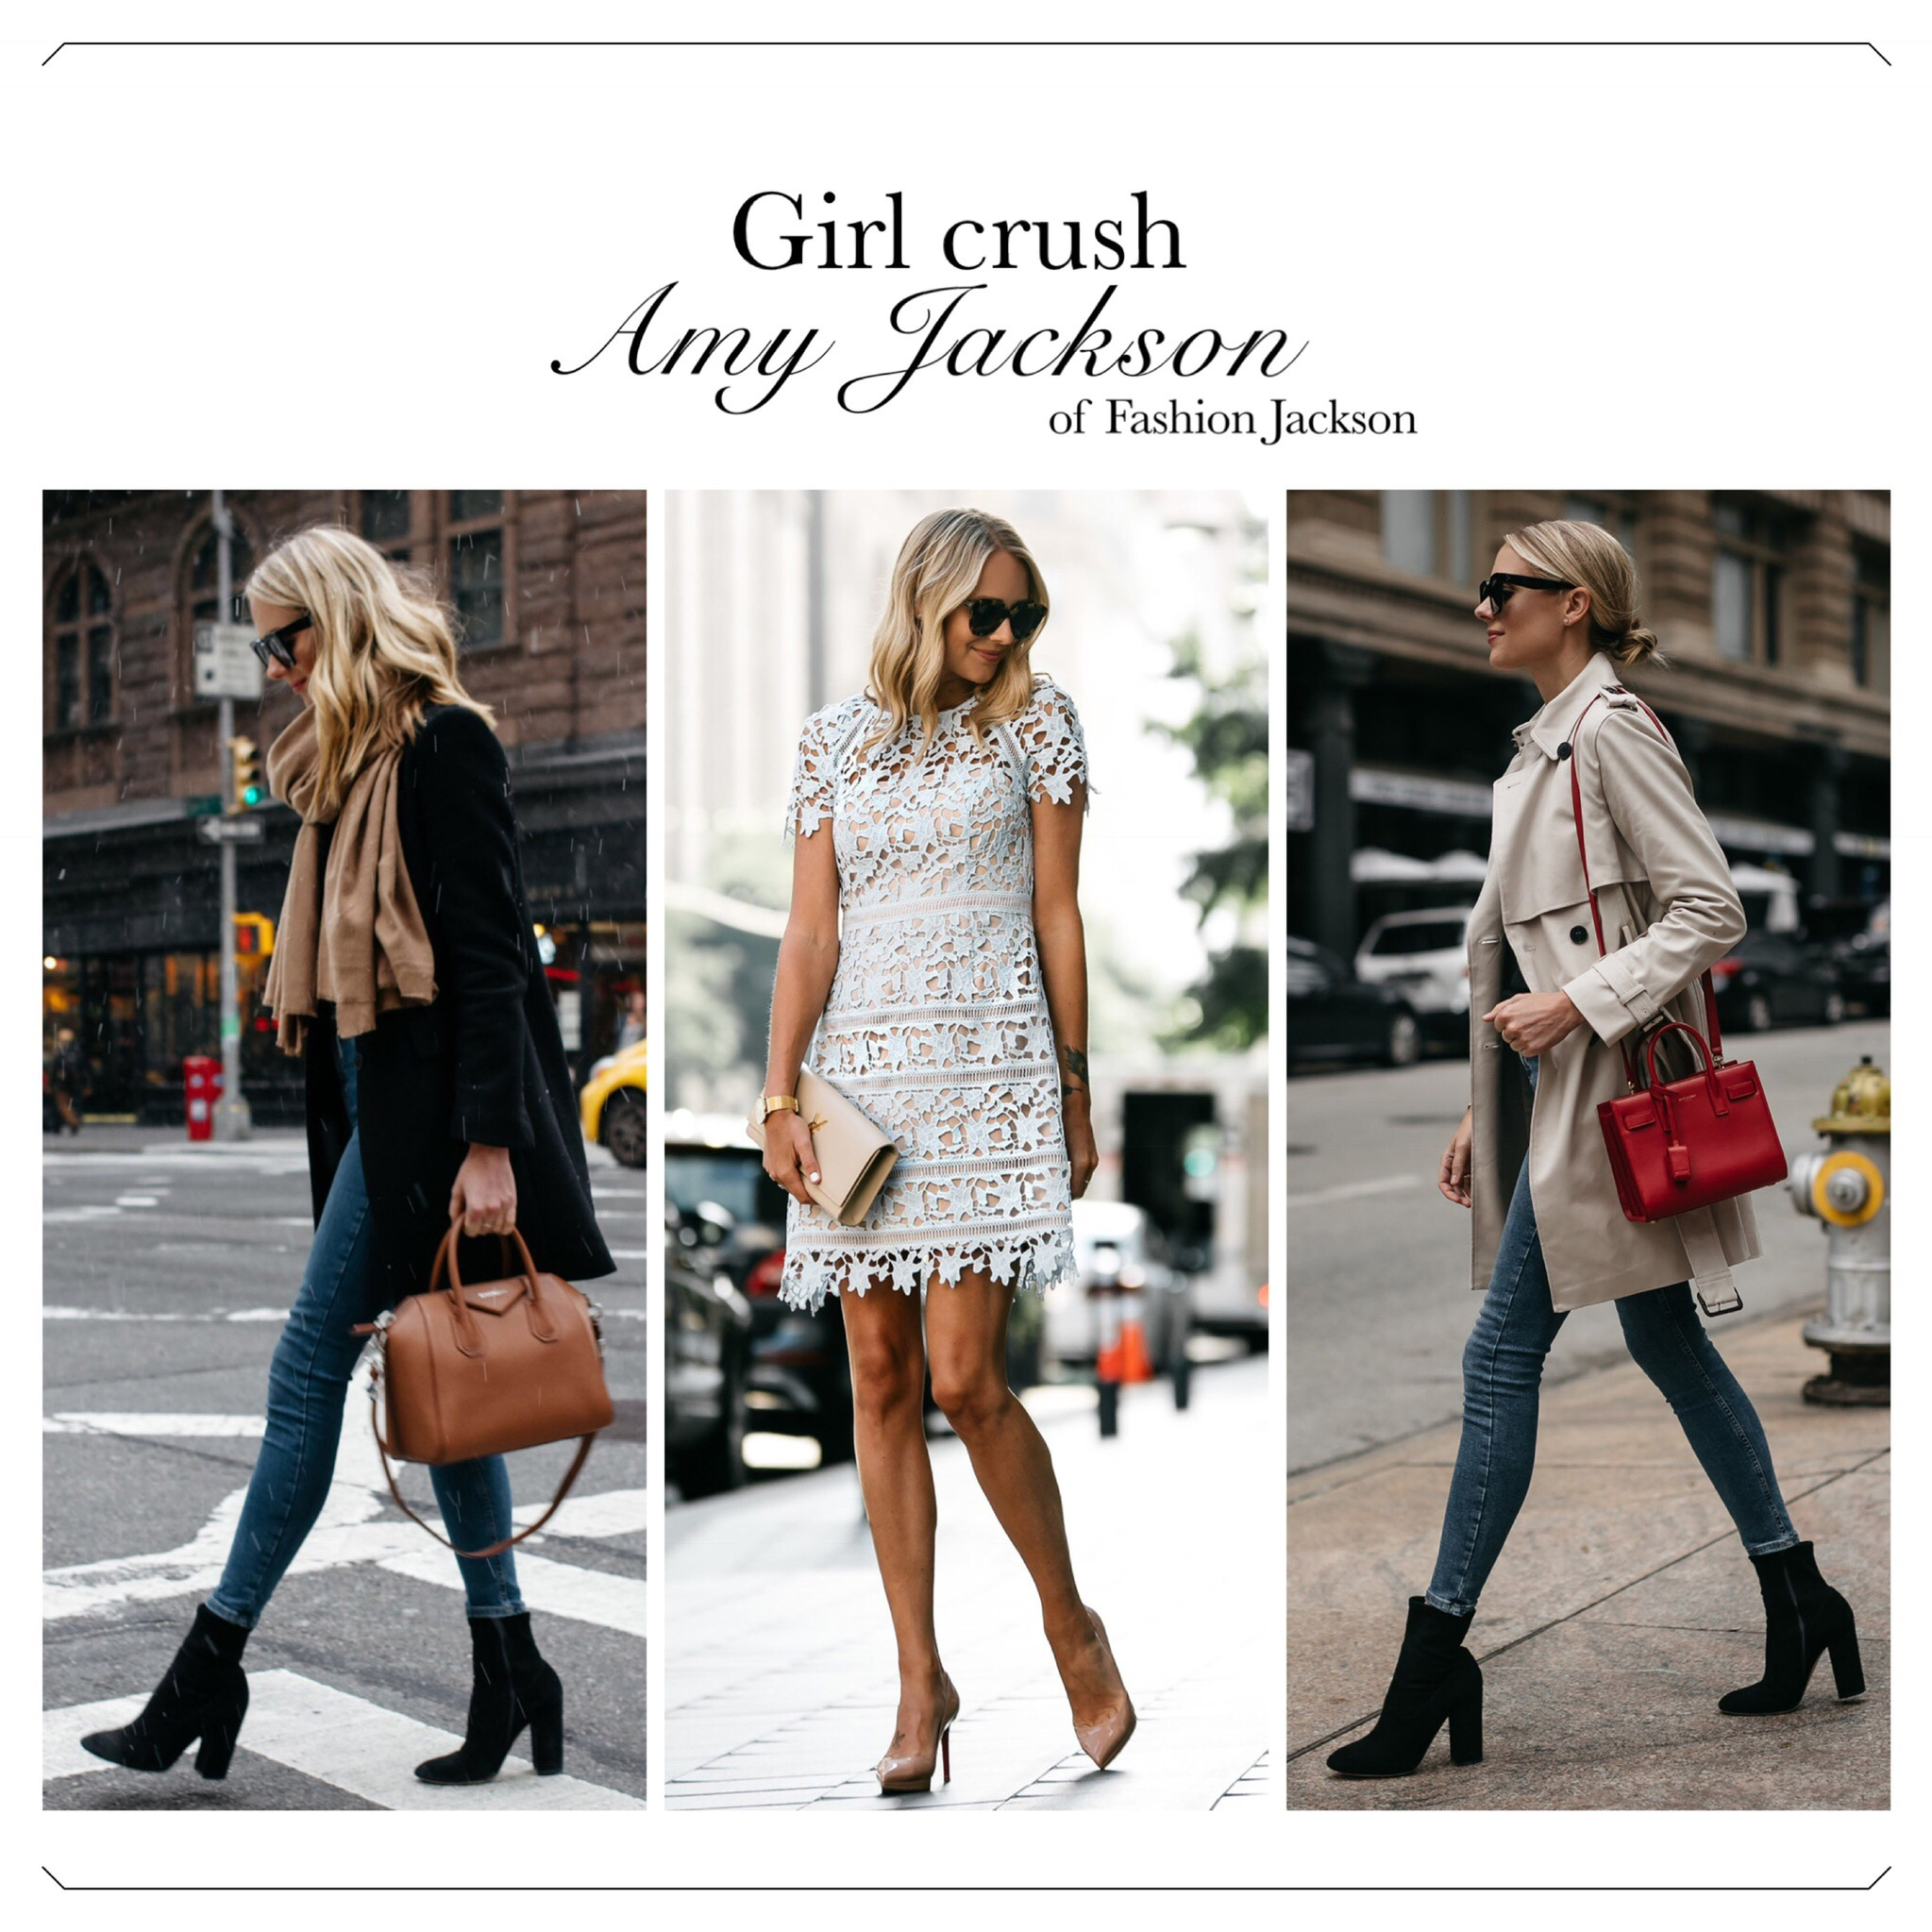 Girl crush - Amy Jackson of Fashion Jackson